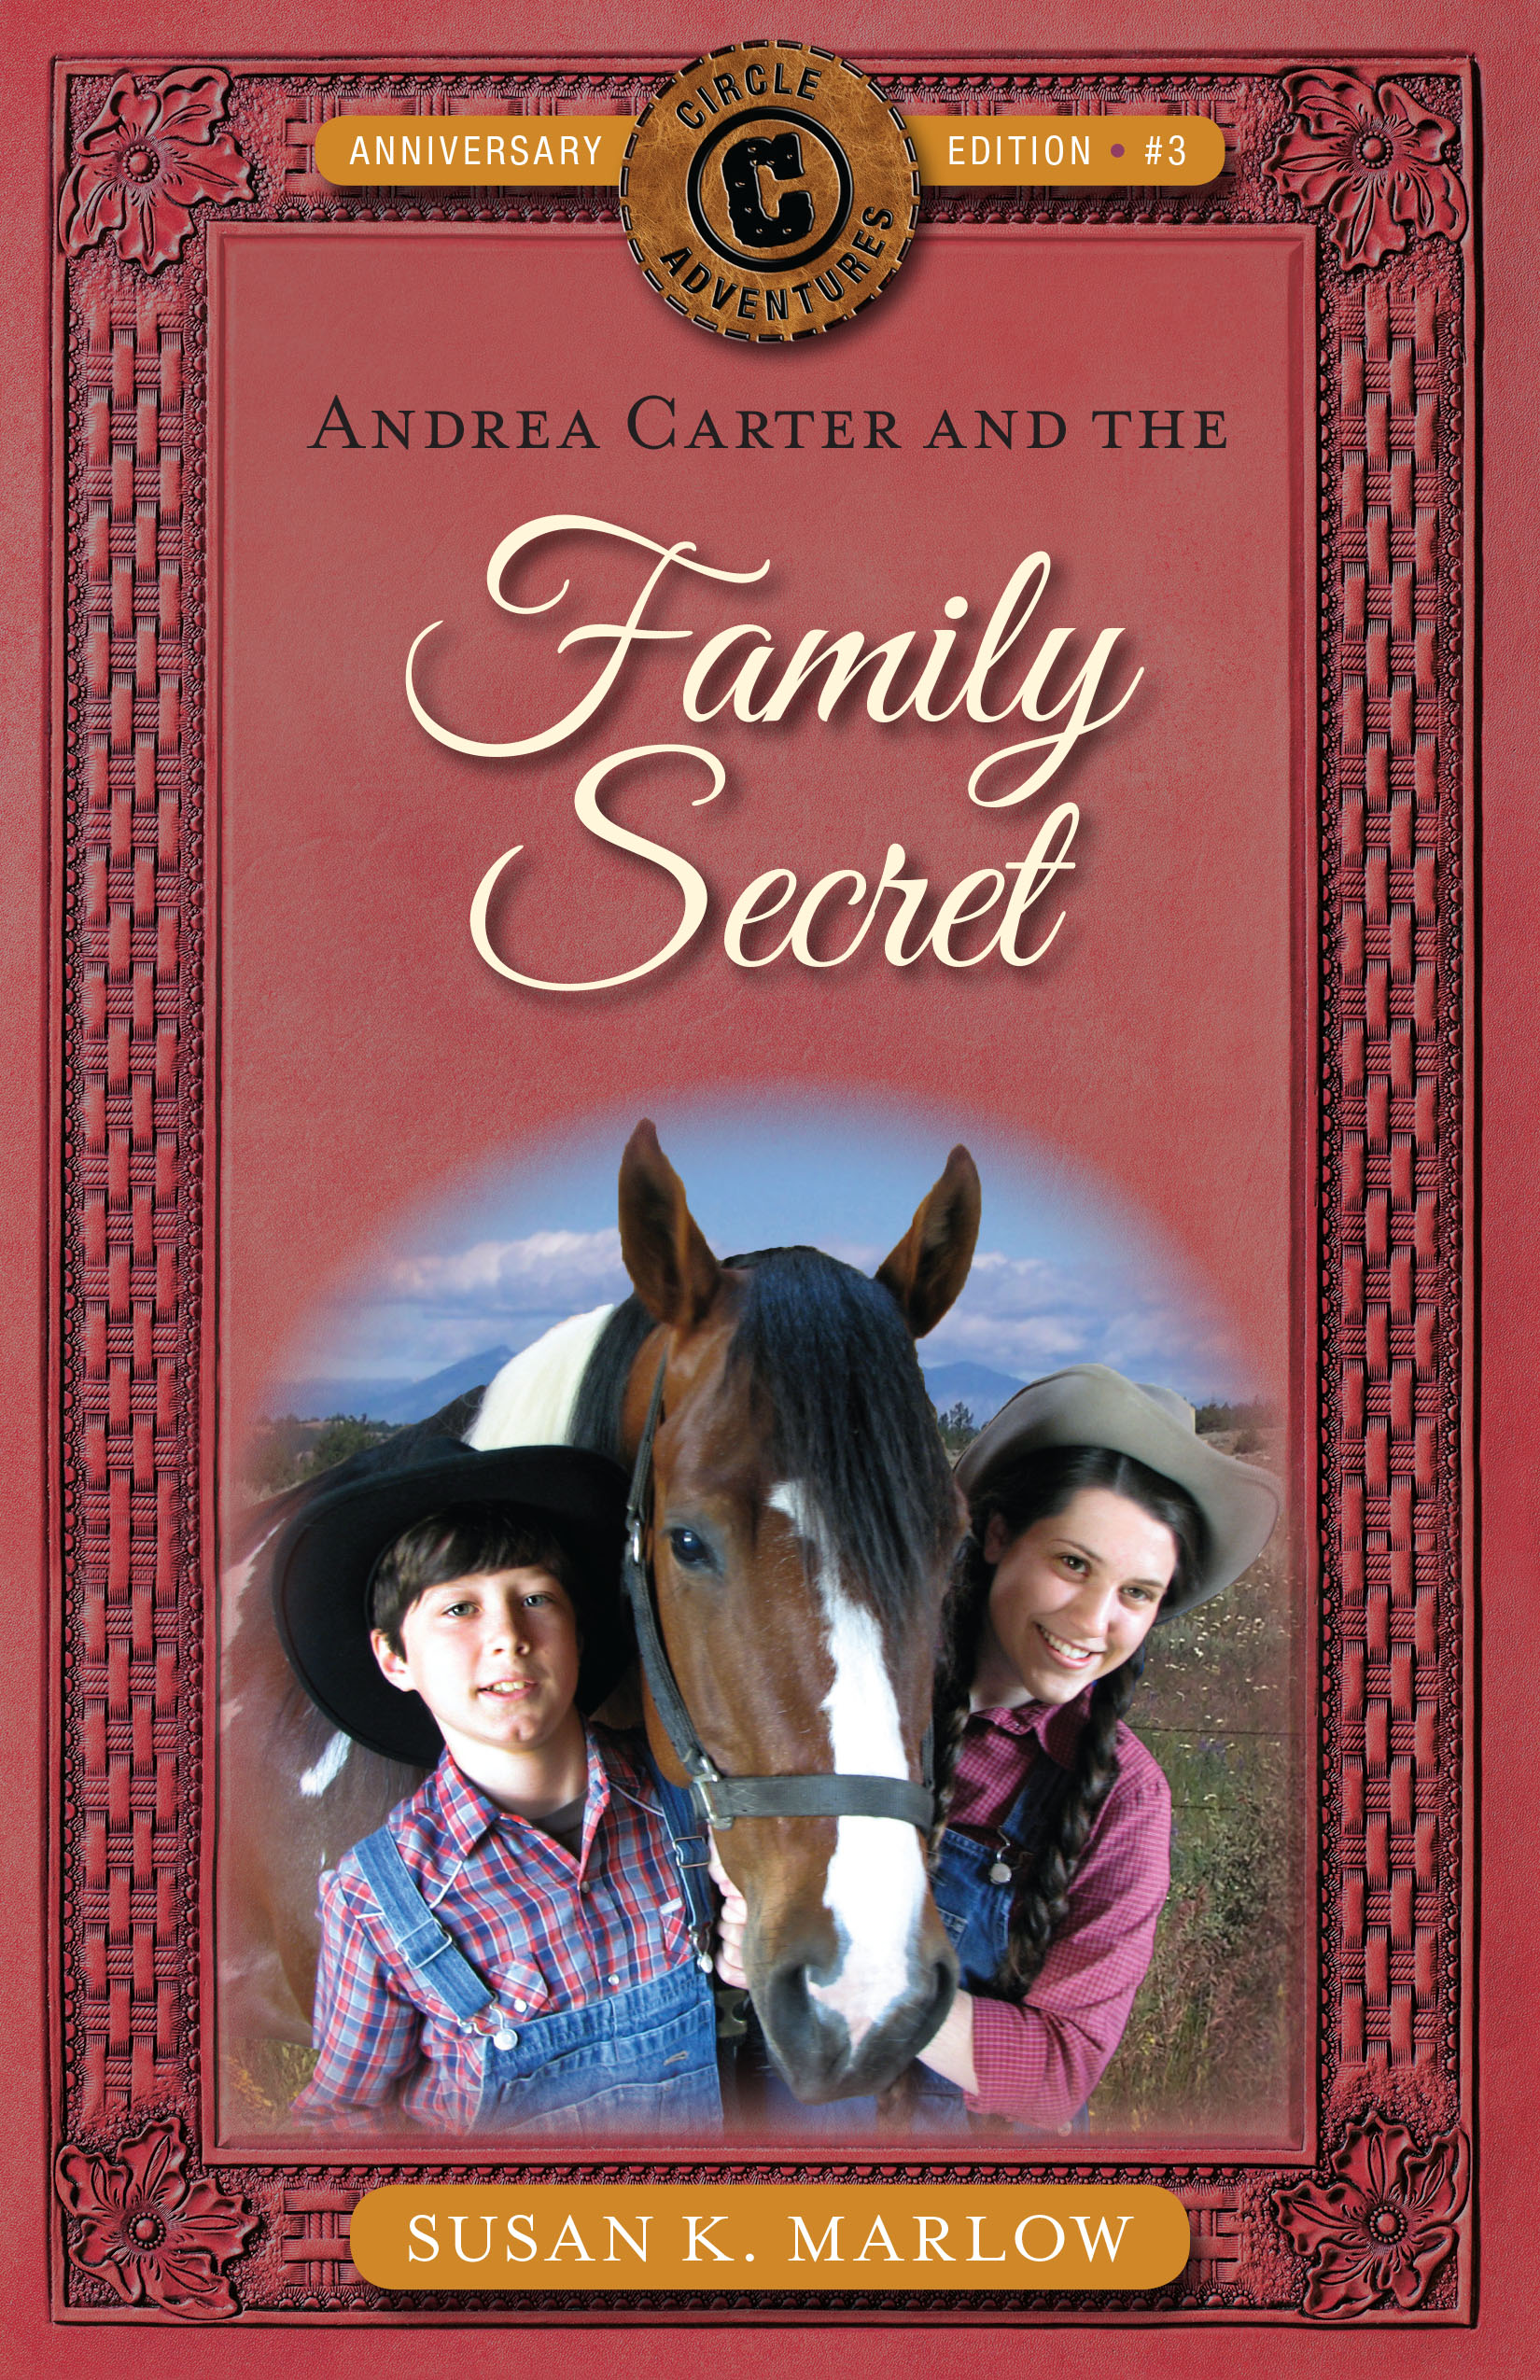 Andrea Carter and the Family Secret - Anniversary Edition